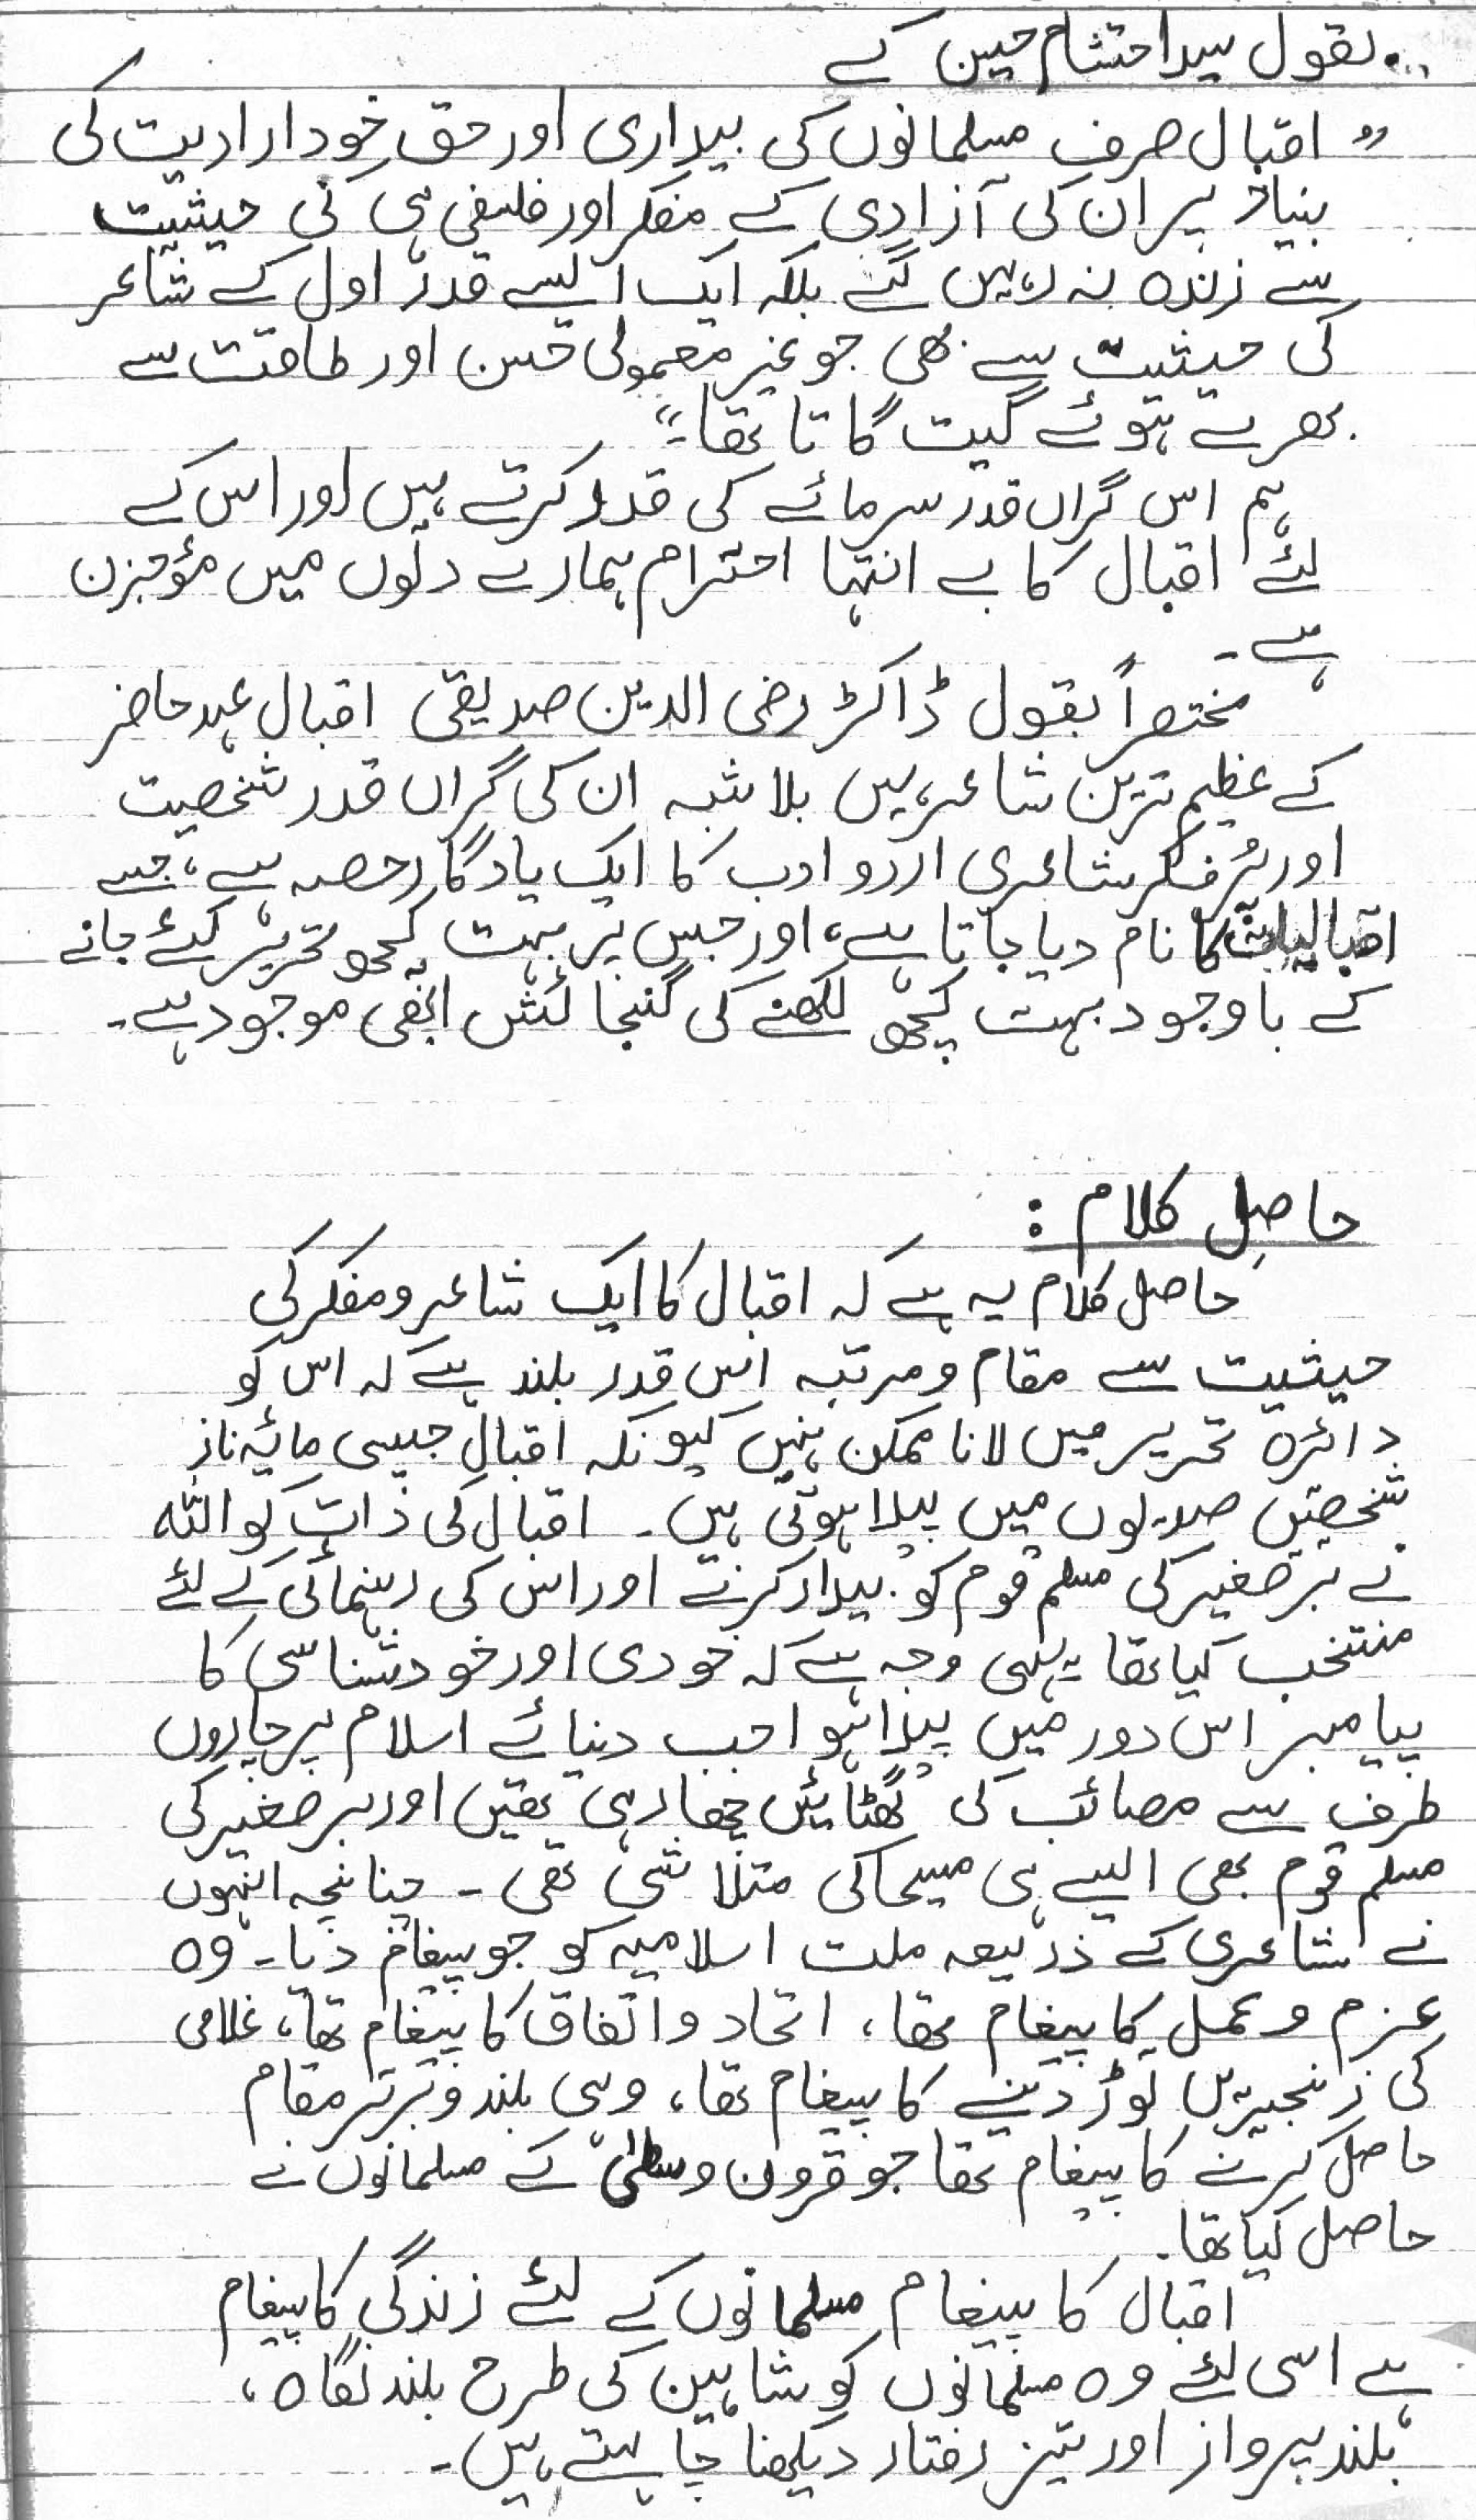 003 Jpg Urdu Essay Allama Iqbal Dreaded On In For Class 10 With Poetry Ka Shaheen Headings And 1920